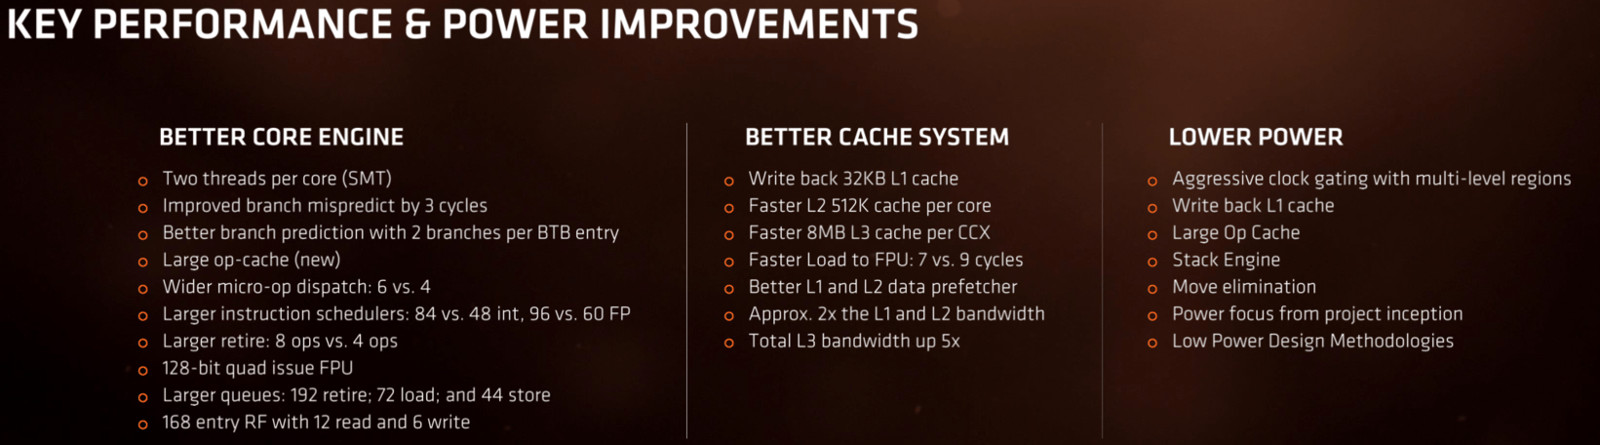 amd-ryzen-performance-improvements.jpg